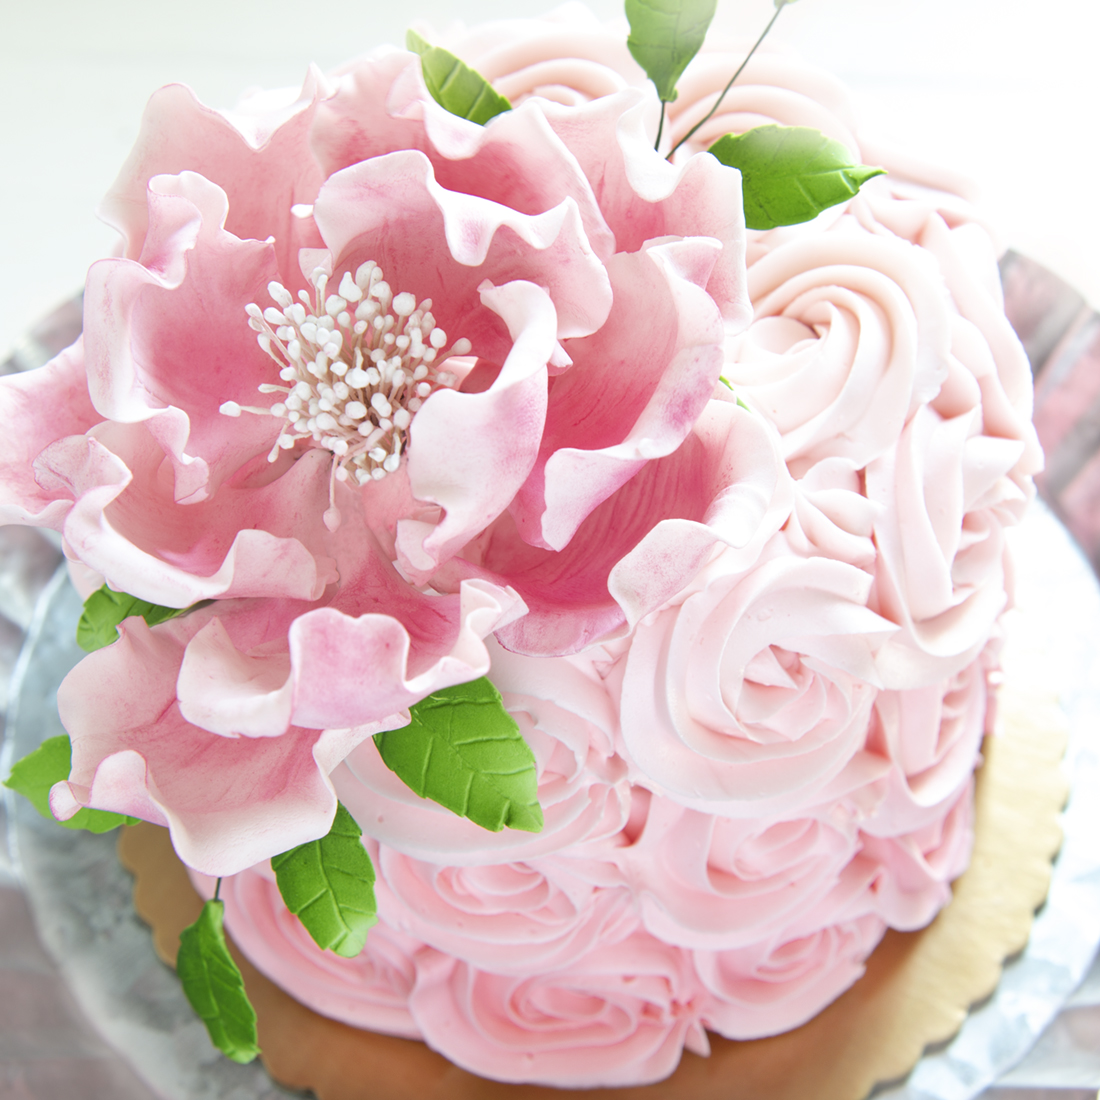 Sugar Flowers - Accent your cake with our beautiful sugar flowers in the colors theme of your choice. We will use our discretion for the flower type.Add $25